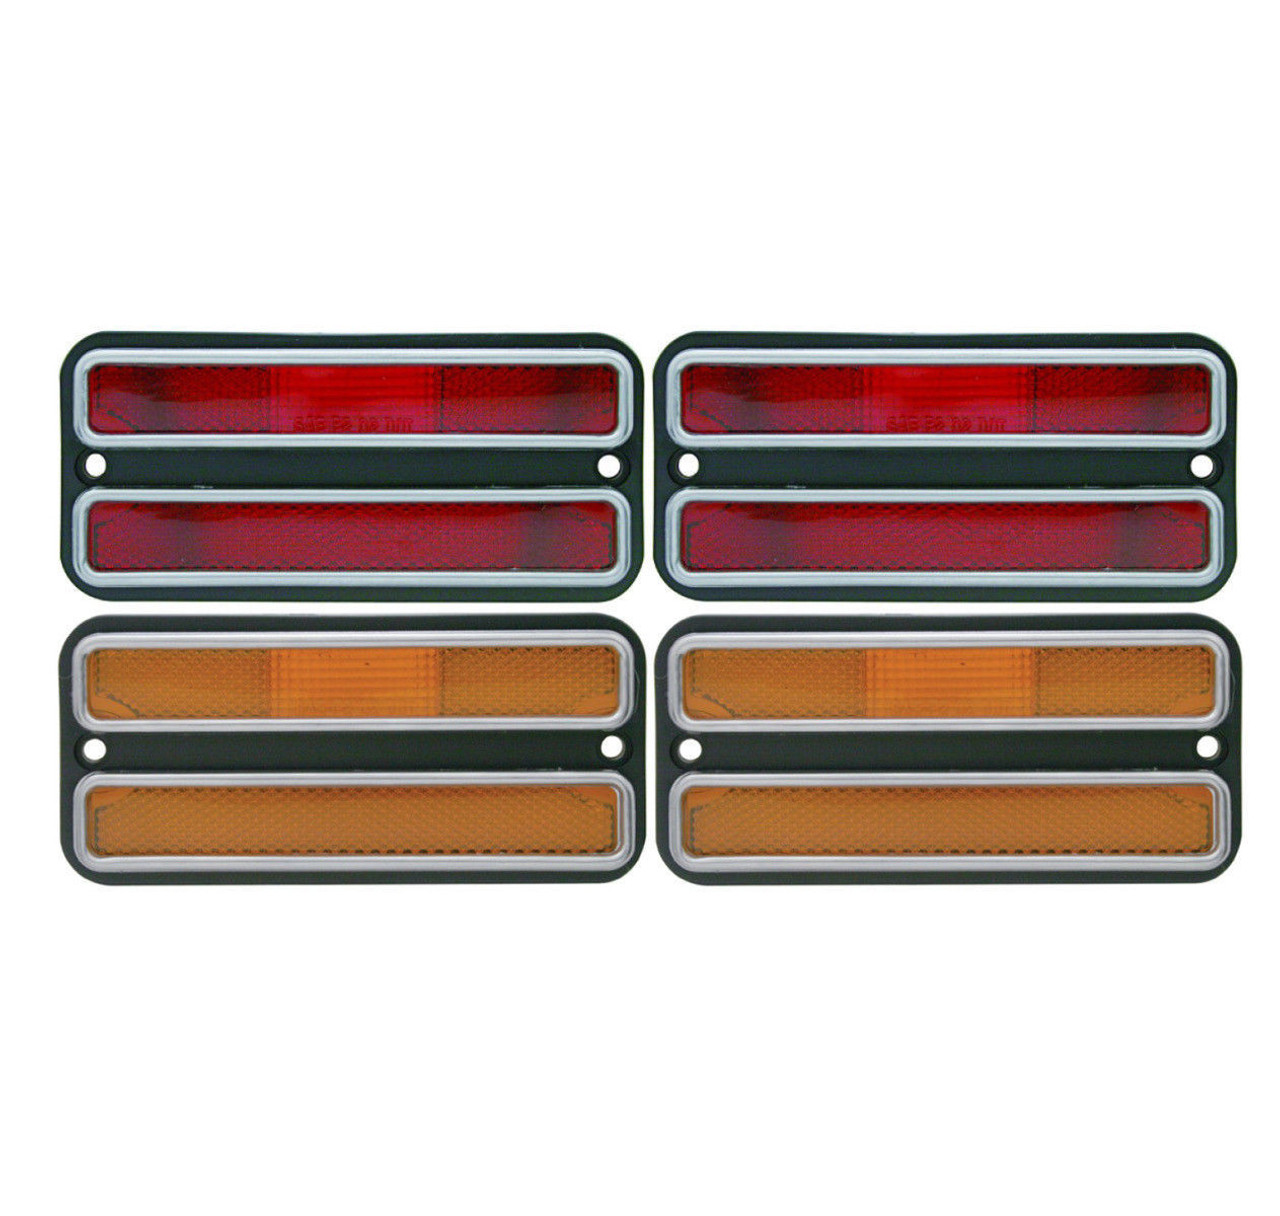 Clearance Side Marker Light Housings Kit, Red/Amber, Fits Chevy 1968-72 Truck